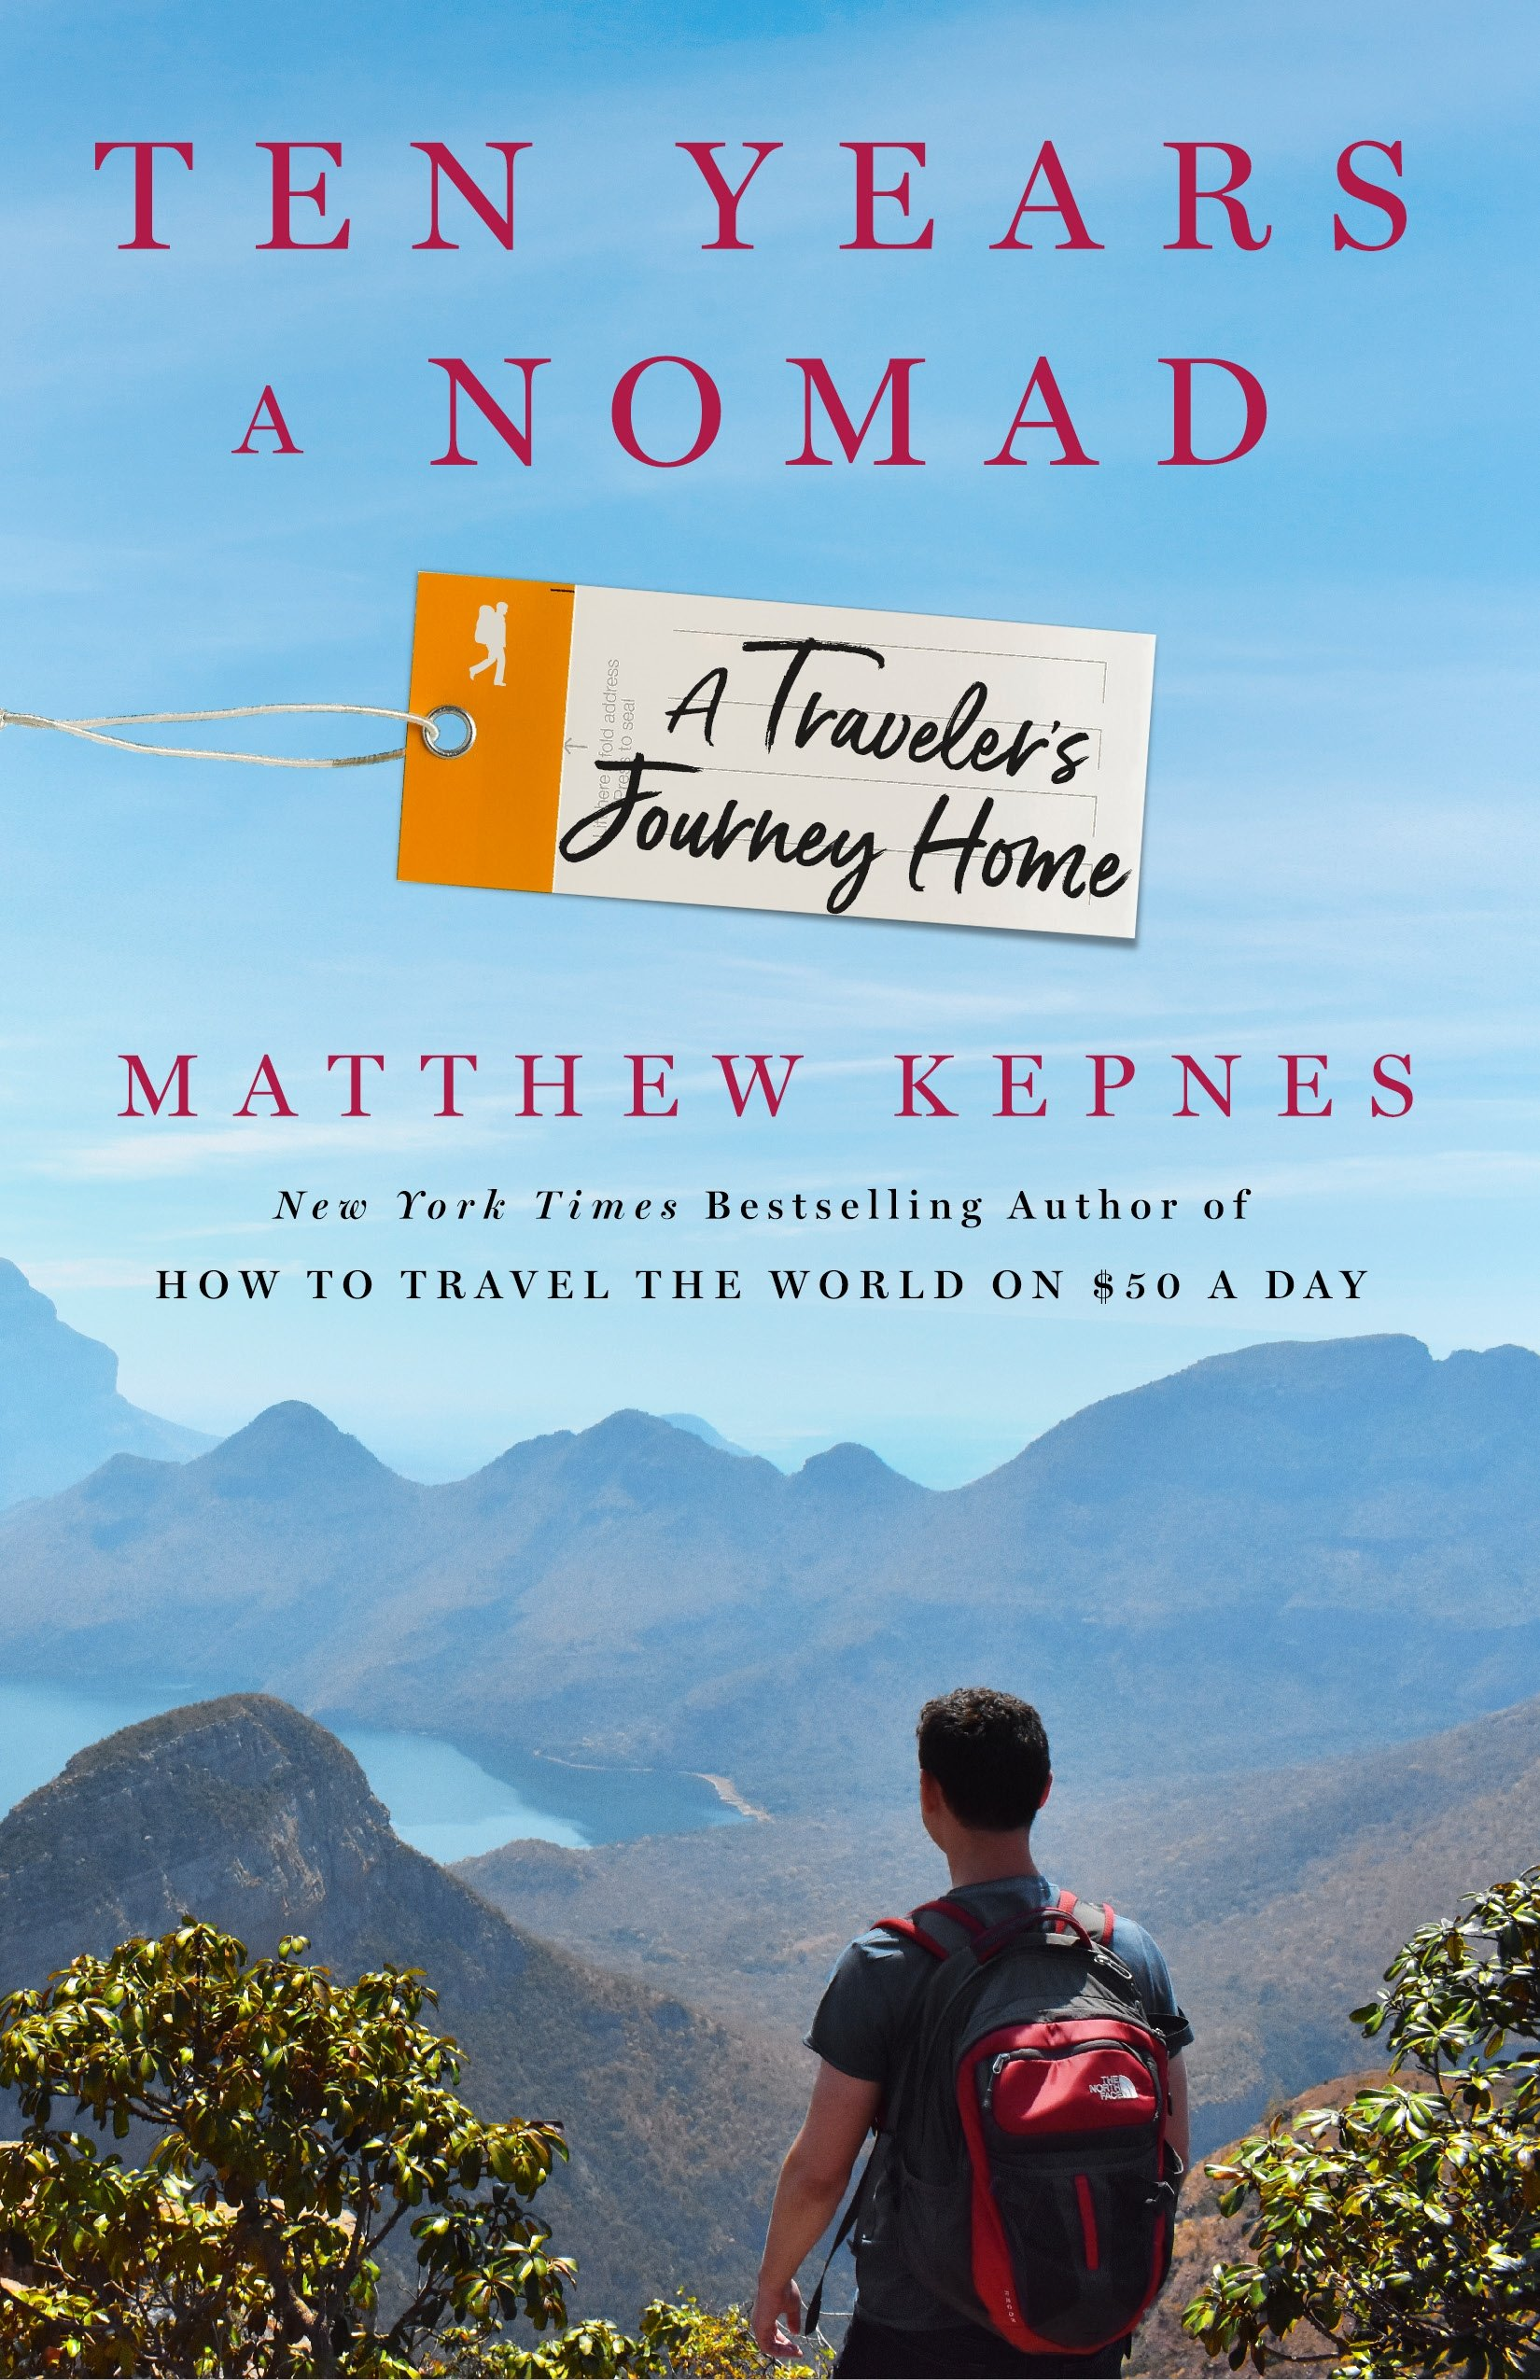 Ten Years a Nomad: A Traveler's Journey Home by St. Martin's Press